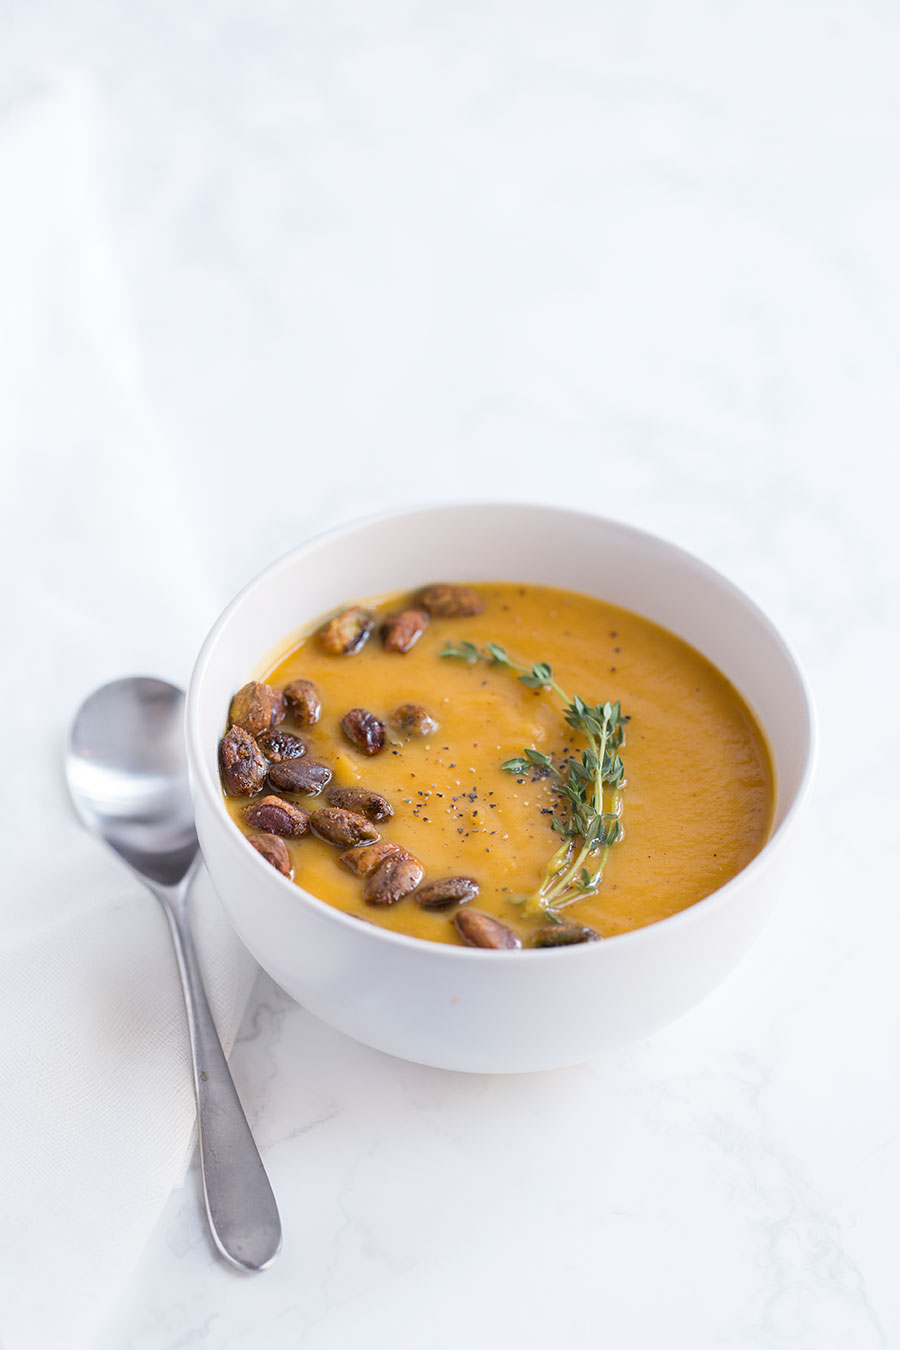 This rich, creamy Roasted Butternut Squash Soup takes things to the next level with a quick and easy Spiced Pistachio garnish! The nuts are totally optional, but they add tons of texture and flavor.